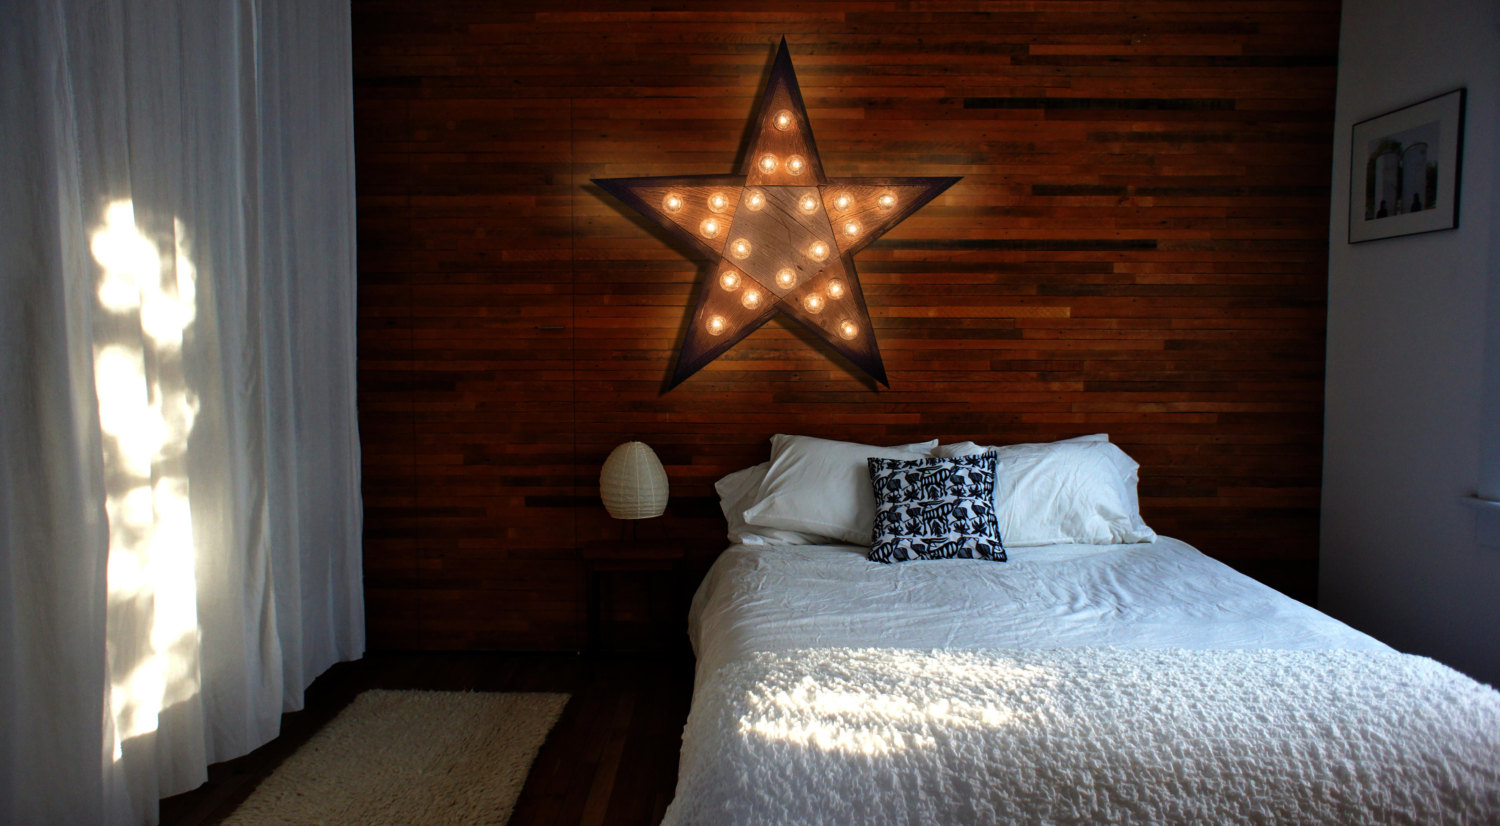 Reclaimed wood marquee star w lights shabby chic for Home decor 72